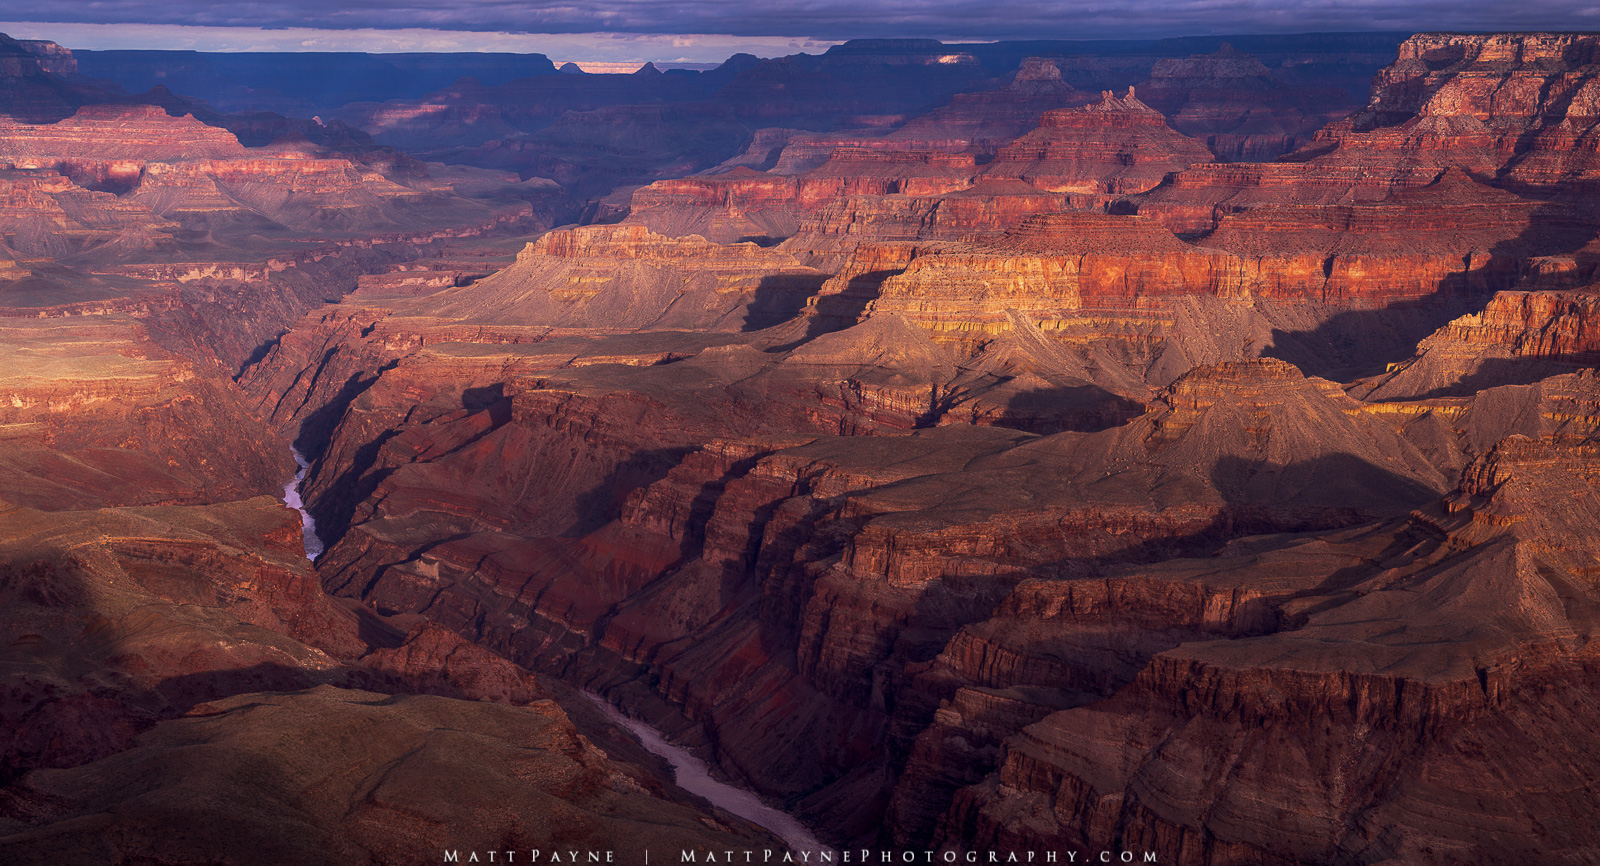 Colorado River, Grand Canyon National Park, Panorama, Sunrise, early light, layers, Landscape Photography, photo